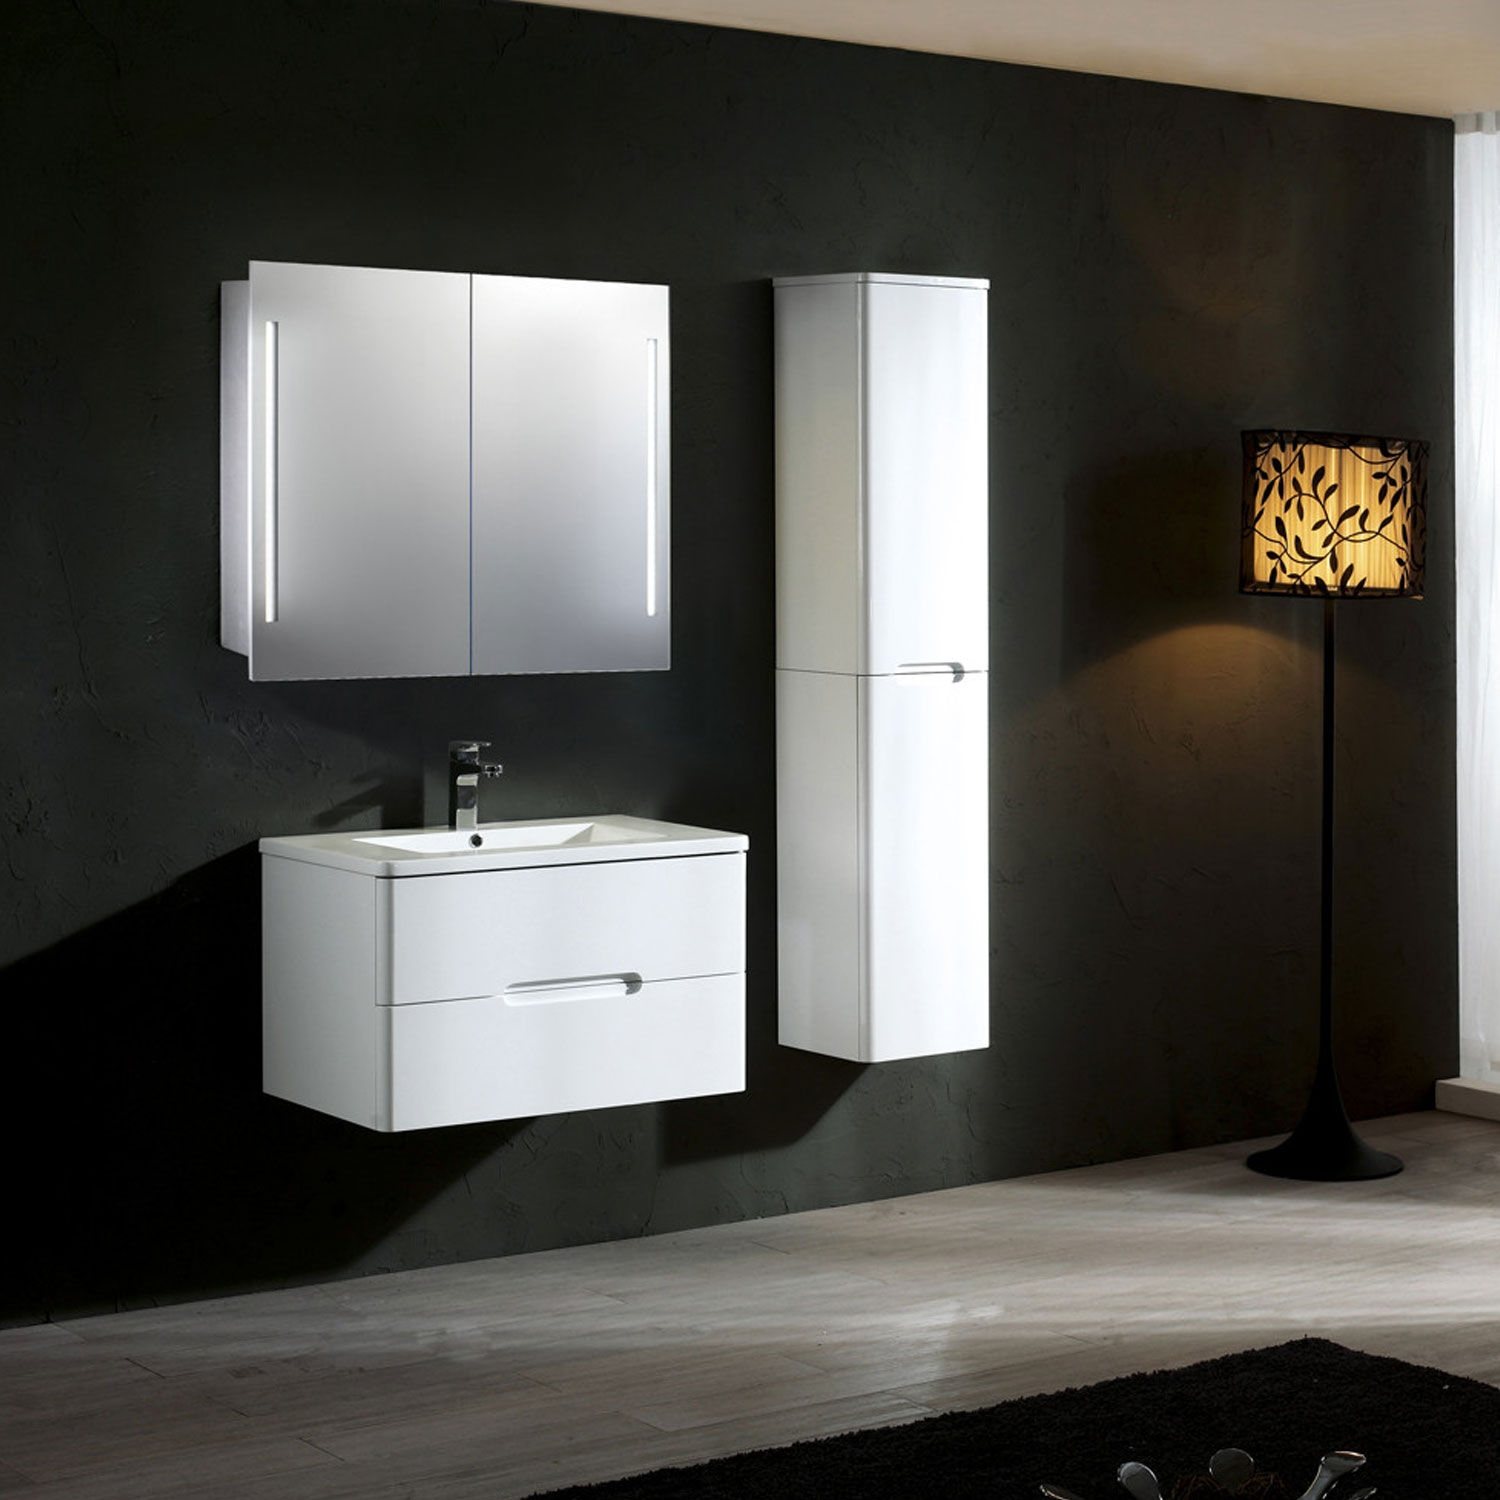 Verona Valletta Slimline 2-Door Mirrored Bathroom Cabinet 600mm with LED Light and Shaver Socket